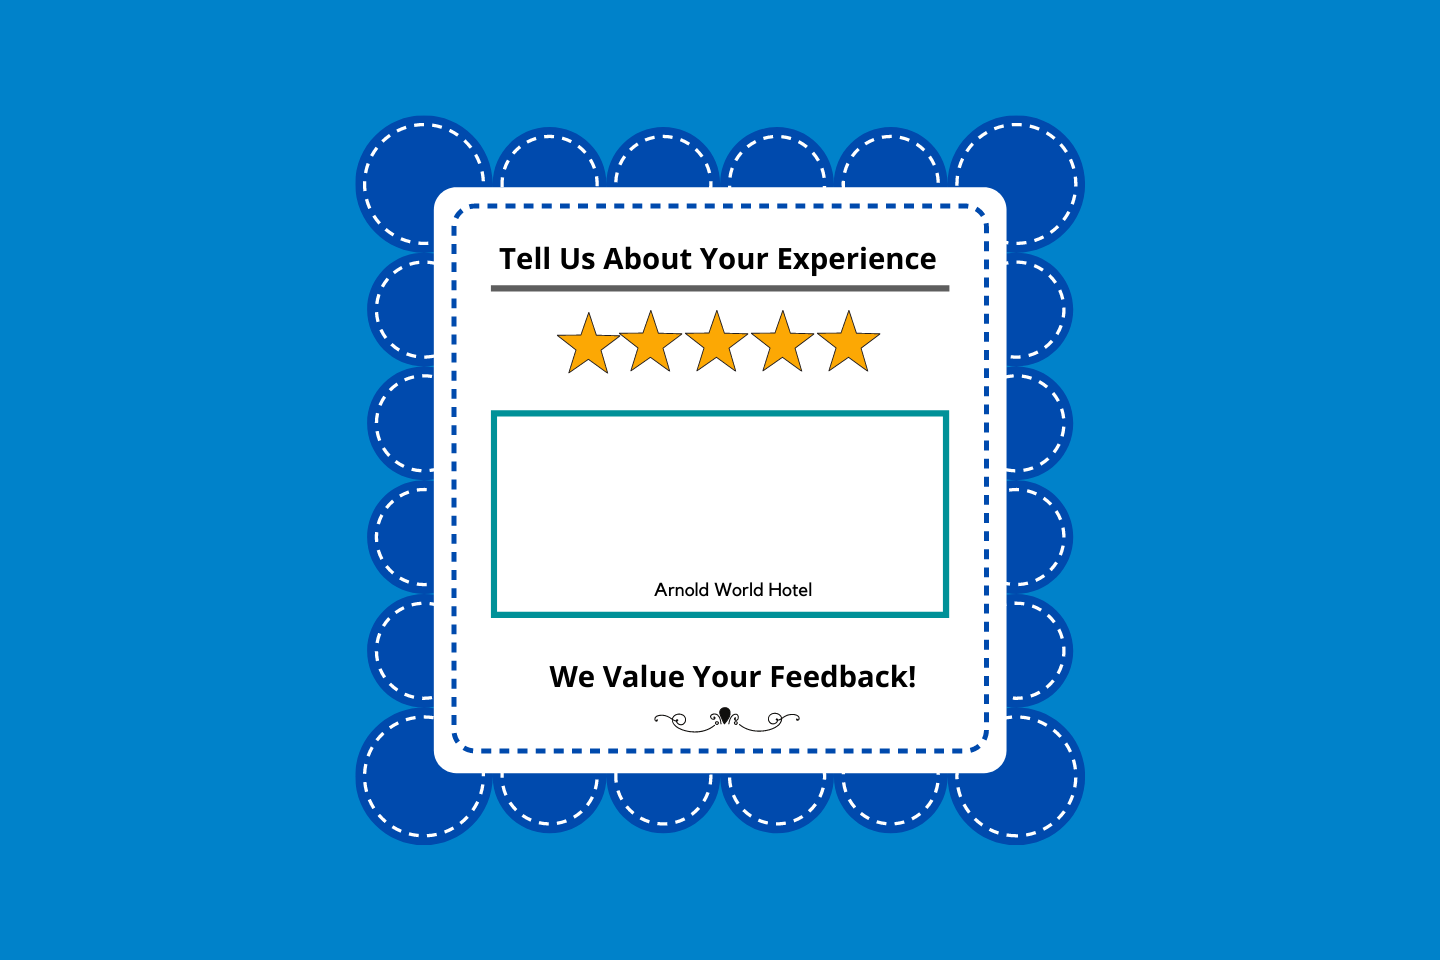 Guest Feedback Strategy for hotels using comment cards